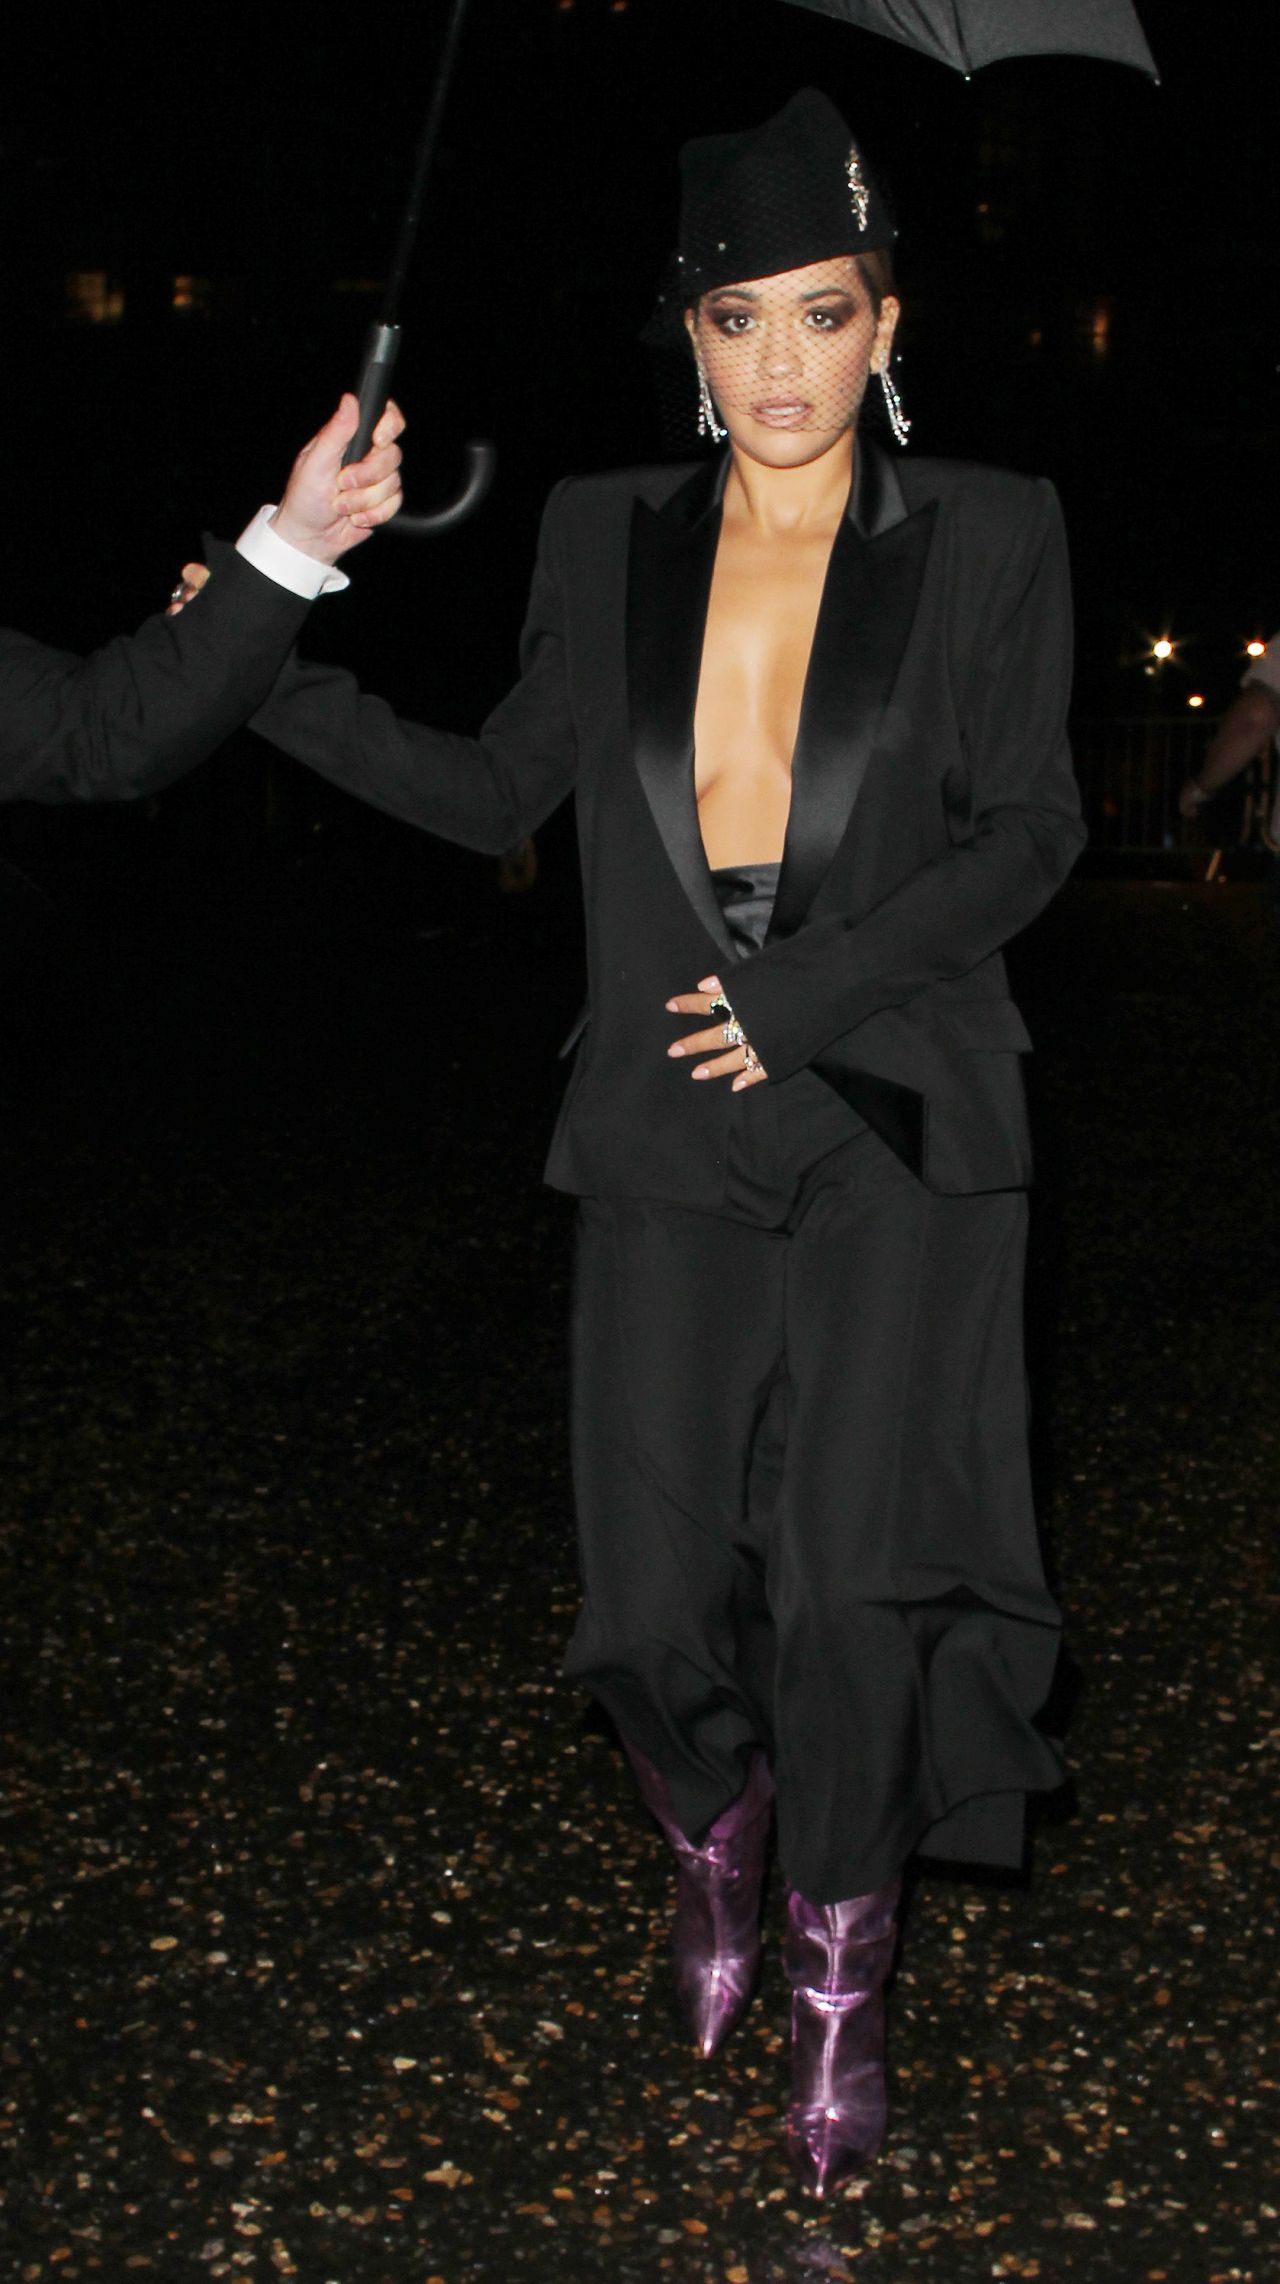 Rita Ora - Arriving At The Tate Morden For GQ Awards in London 09/05/2017